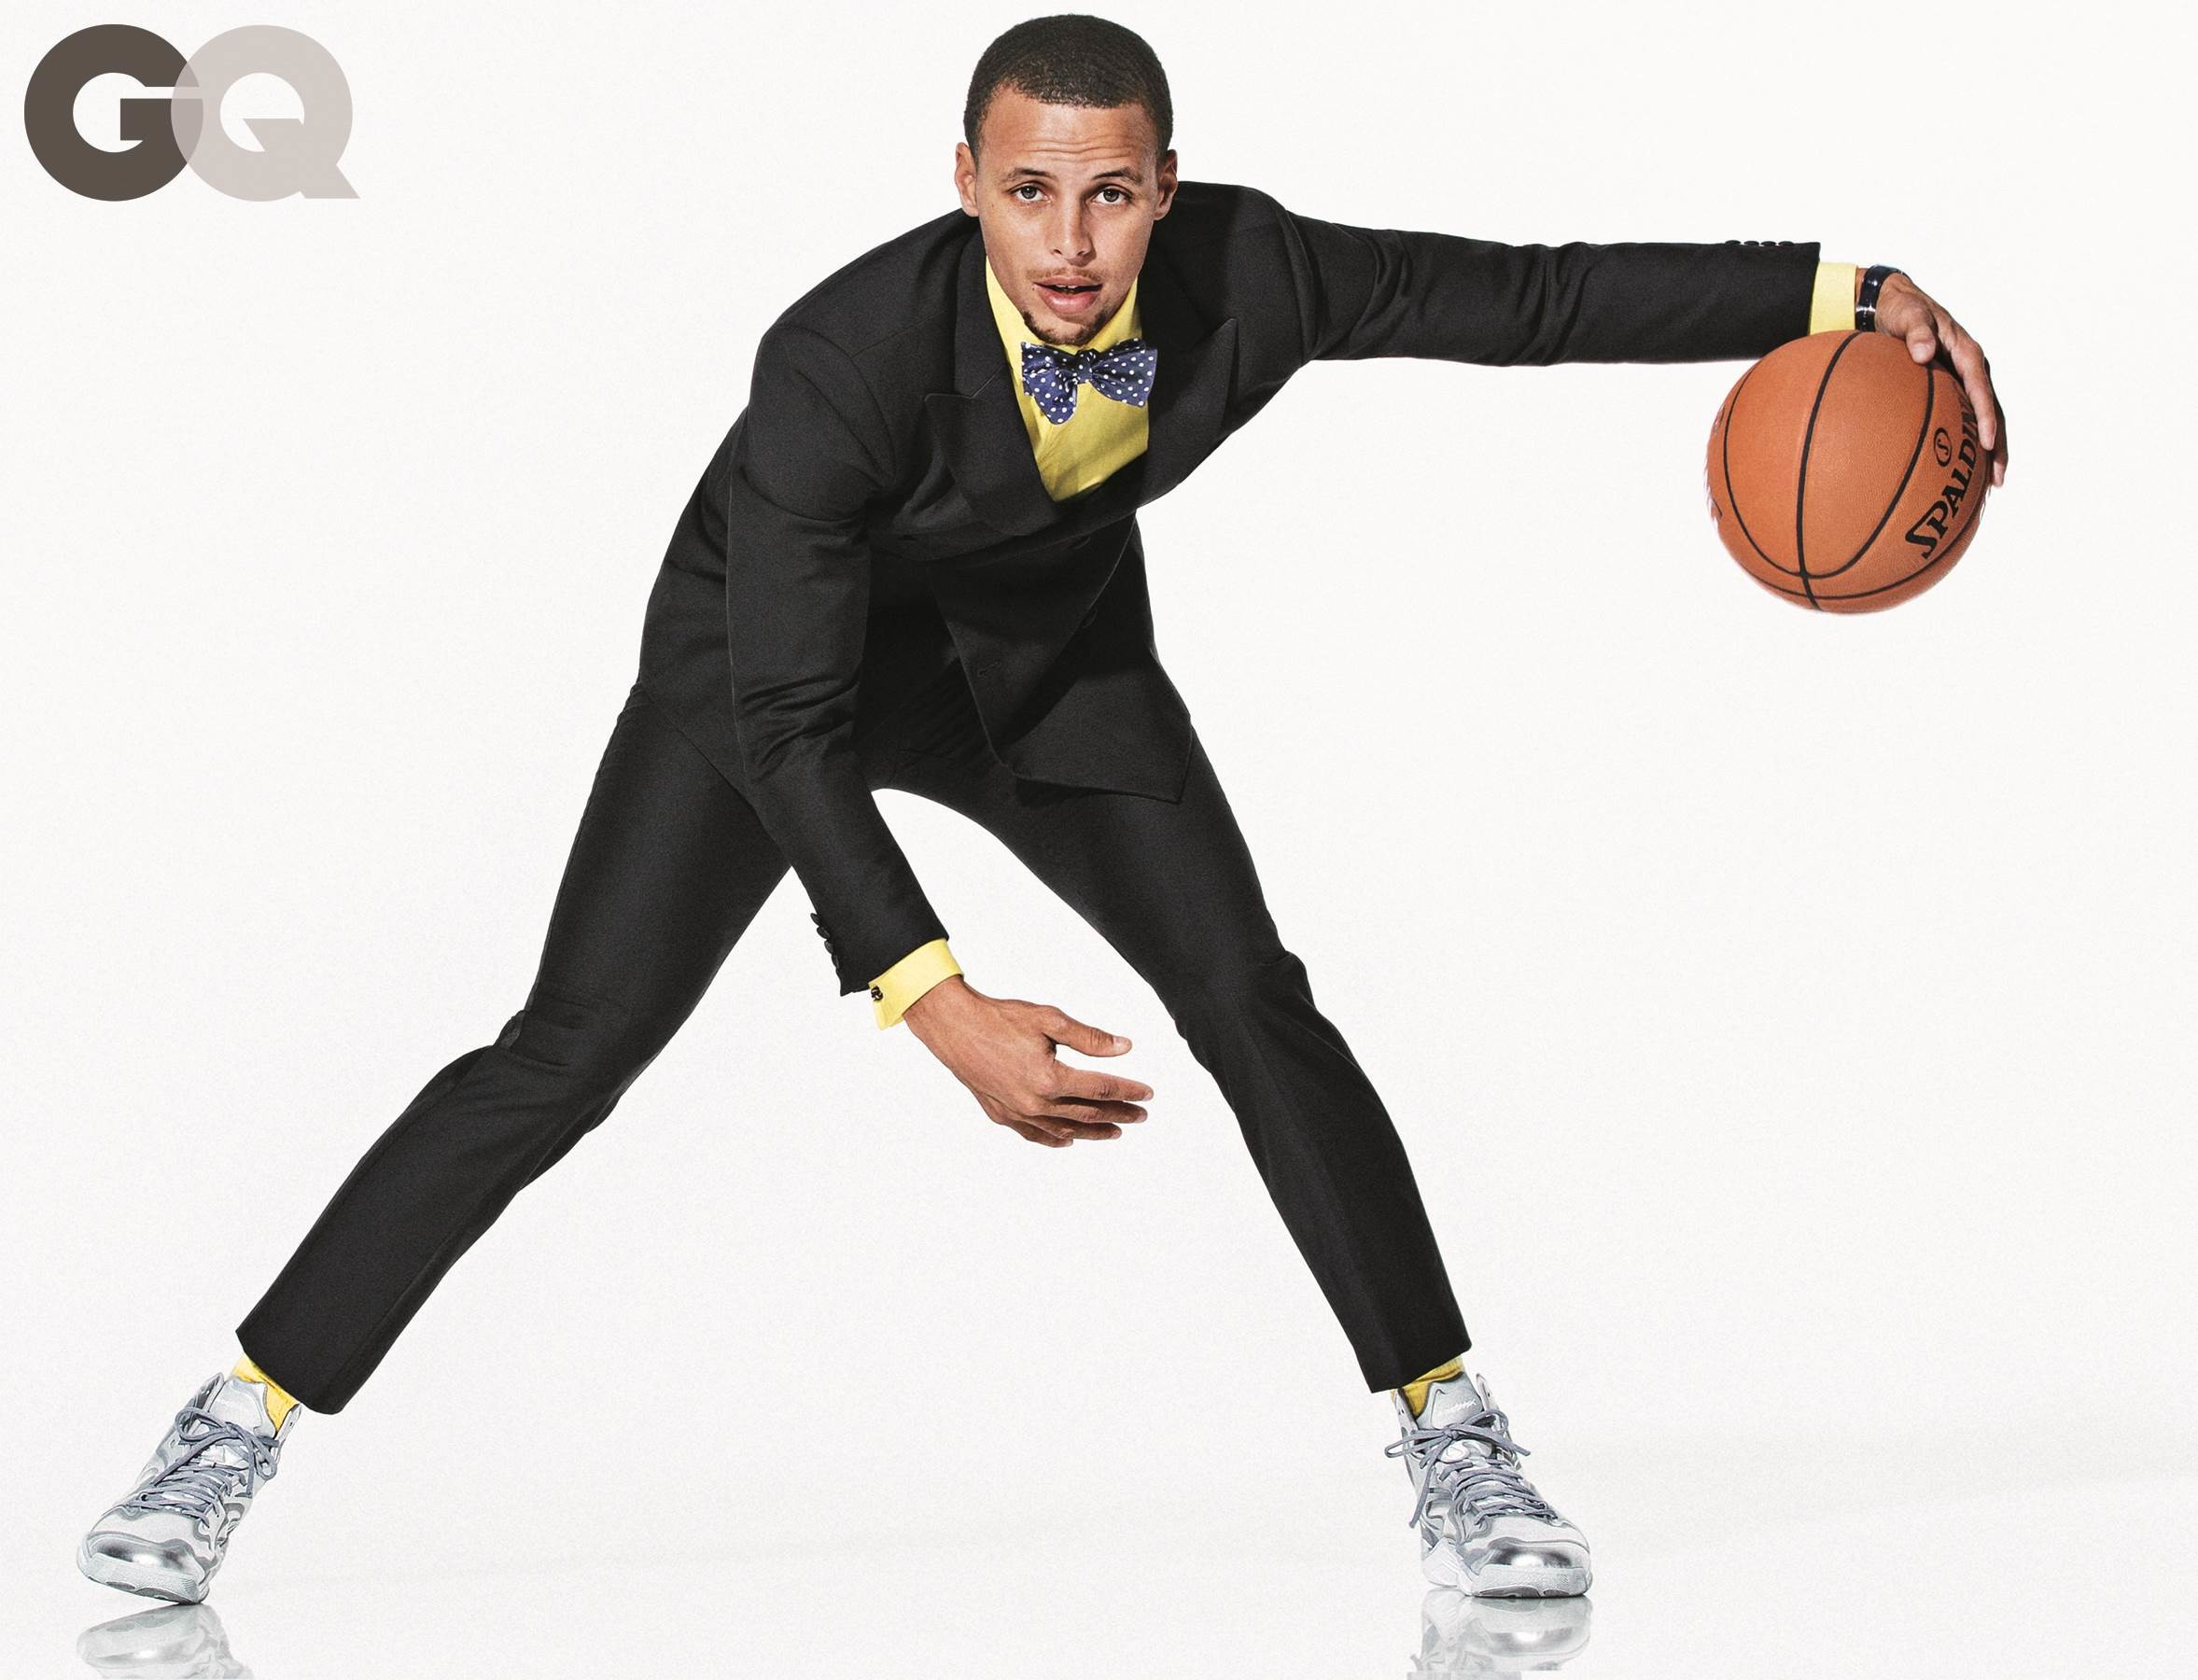 Stephen Curry Wallpaper HD Tuxedo Sneakers – Artistic Wallpapers